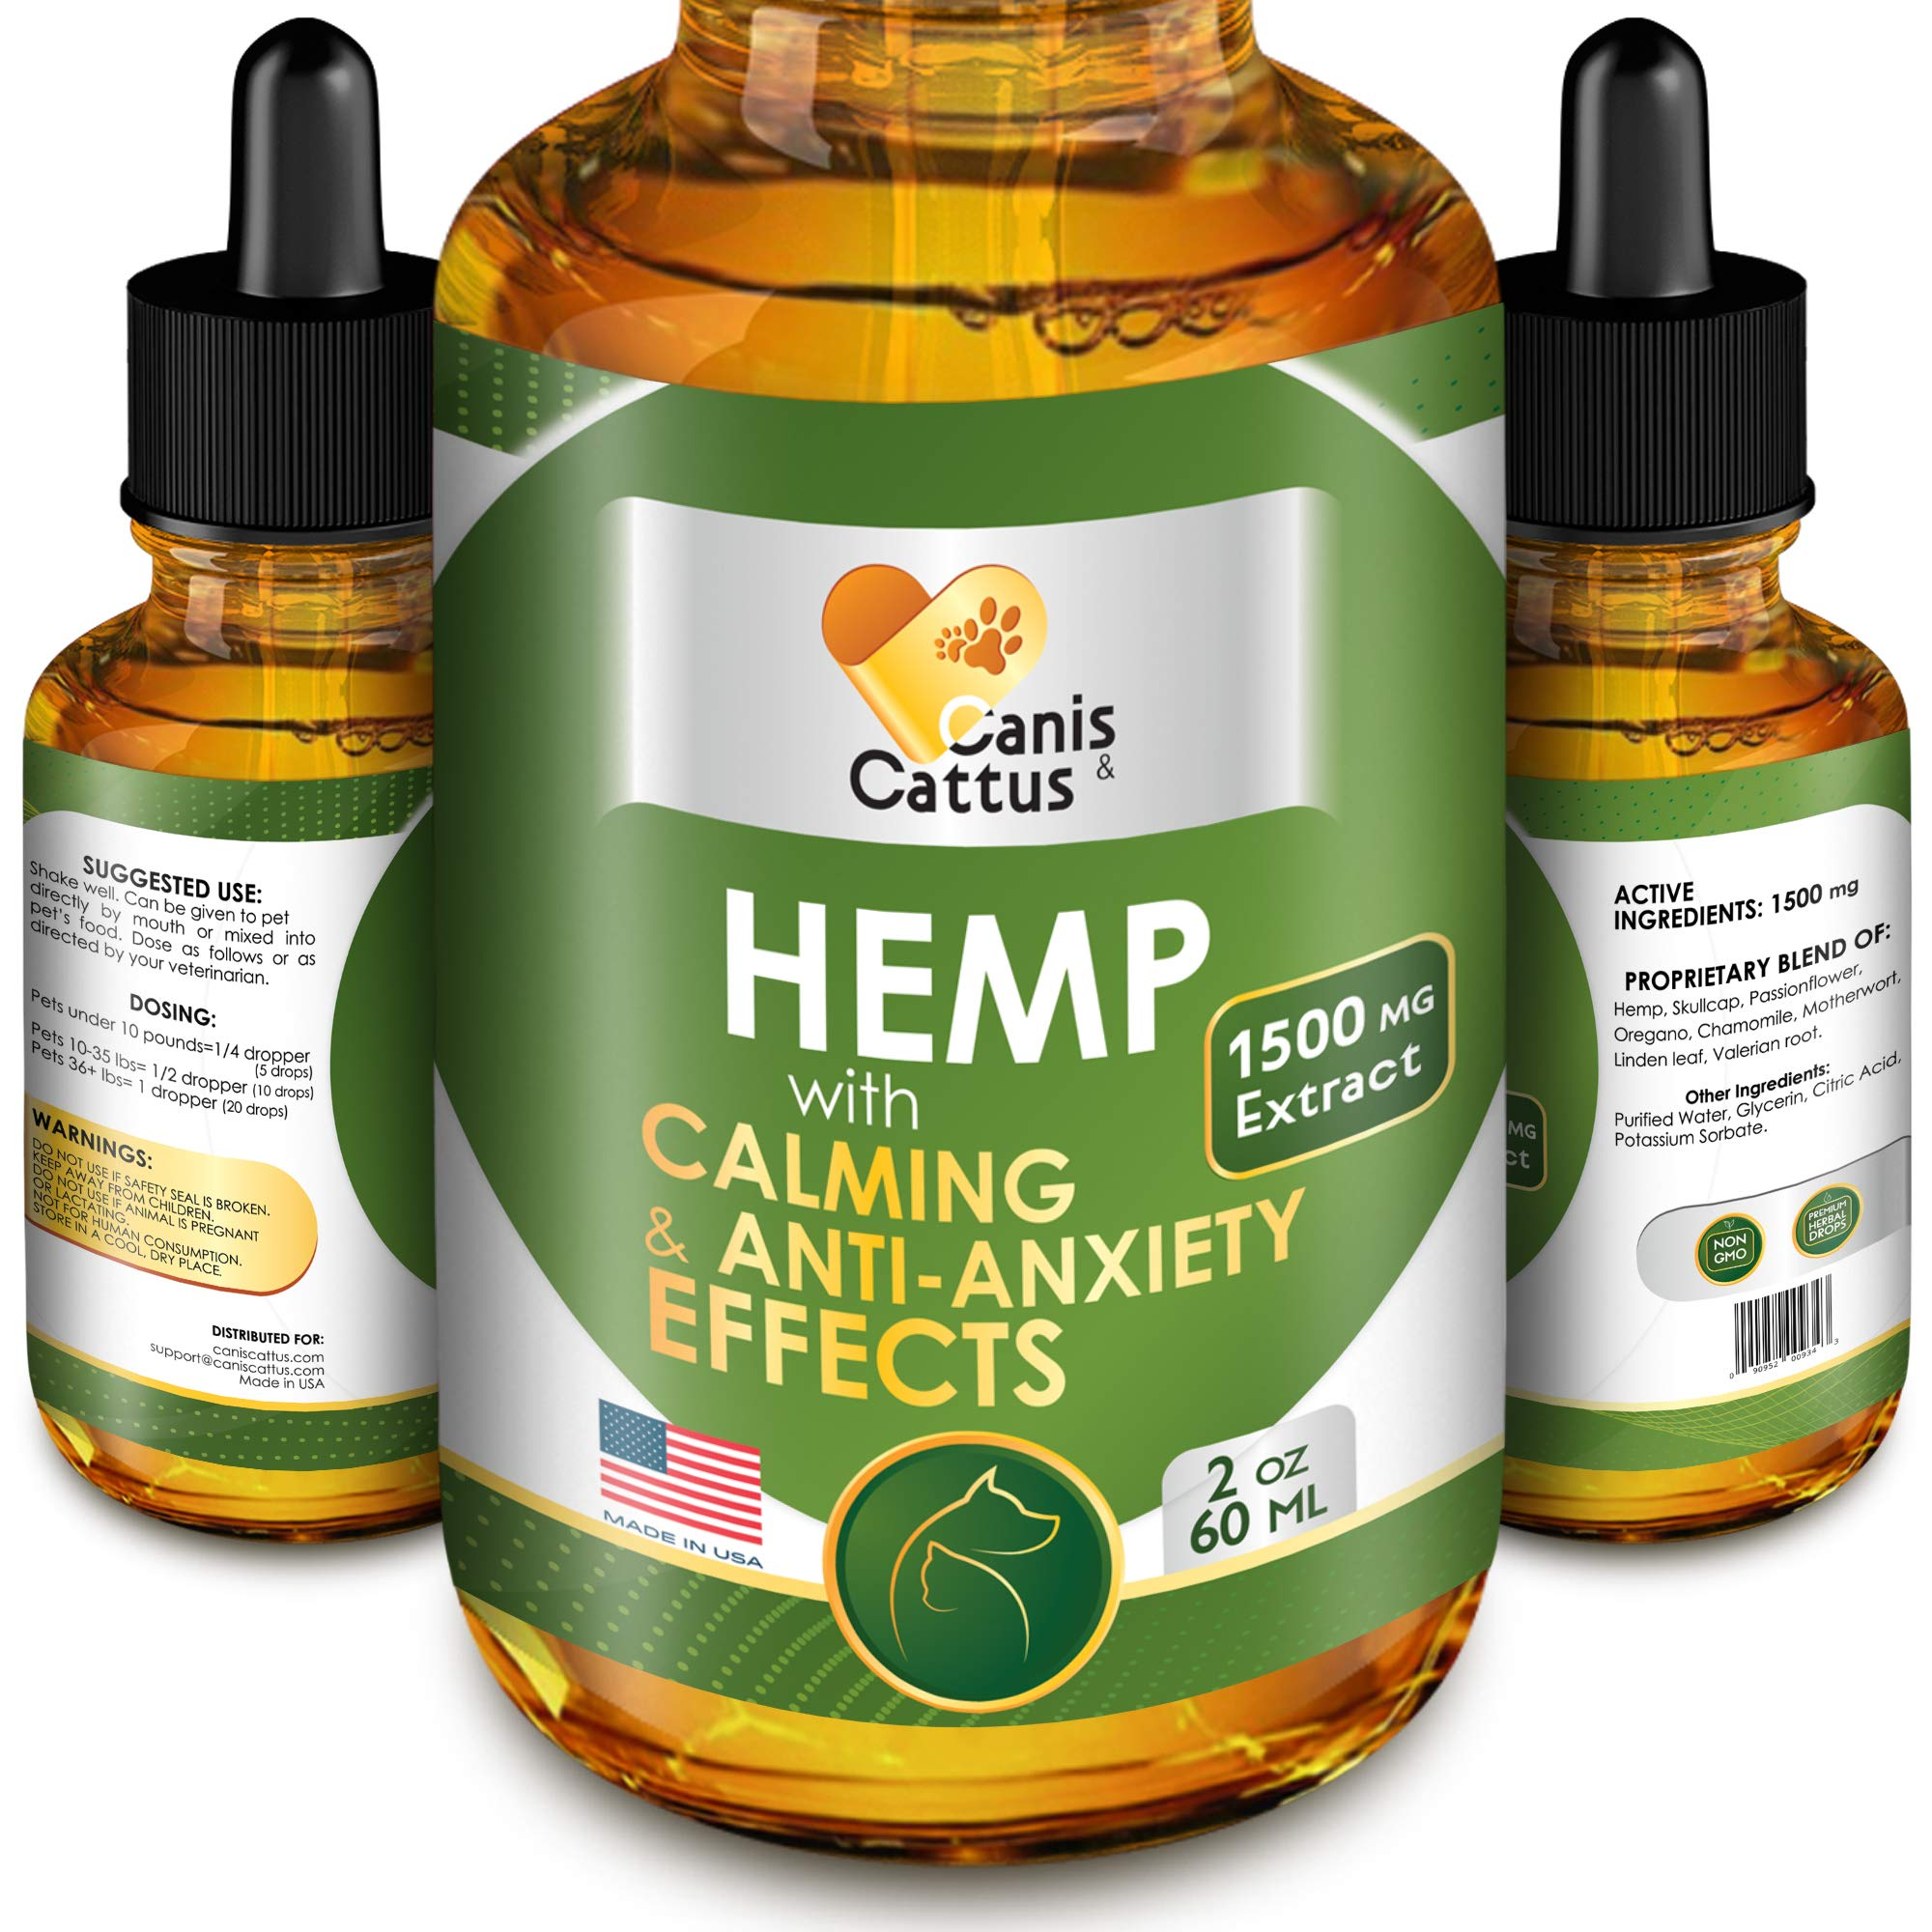 Hemp Oil for Dogs & Cats - 1500 MG - Natural Dog Pain Relief - Anxiety&Stress Relief - Supports Hip&Joint Health - Hemp Skullcap Passionflower Oregano Chamomile - Calming Effect (2 oz) by Canis&Cattus